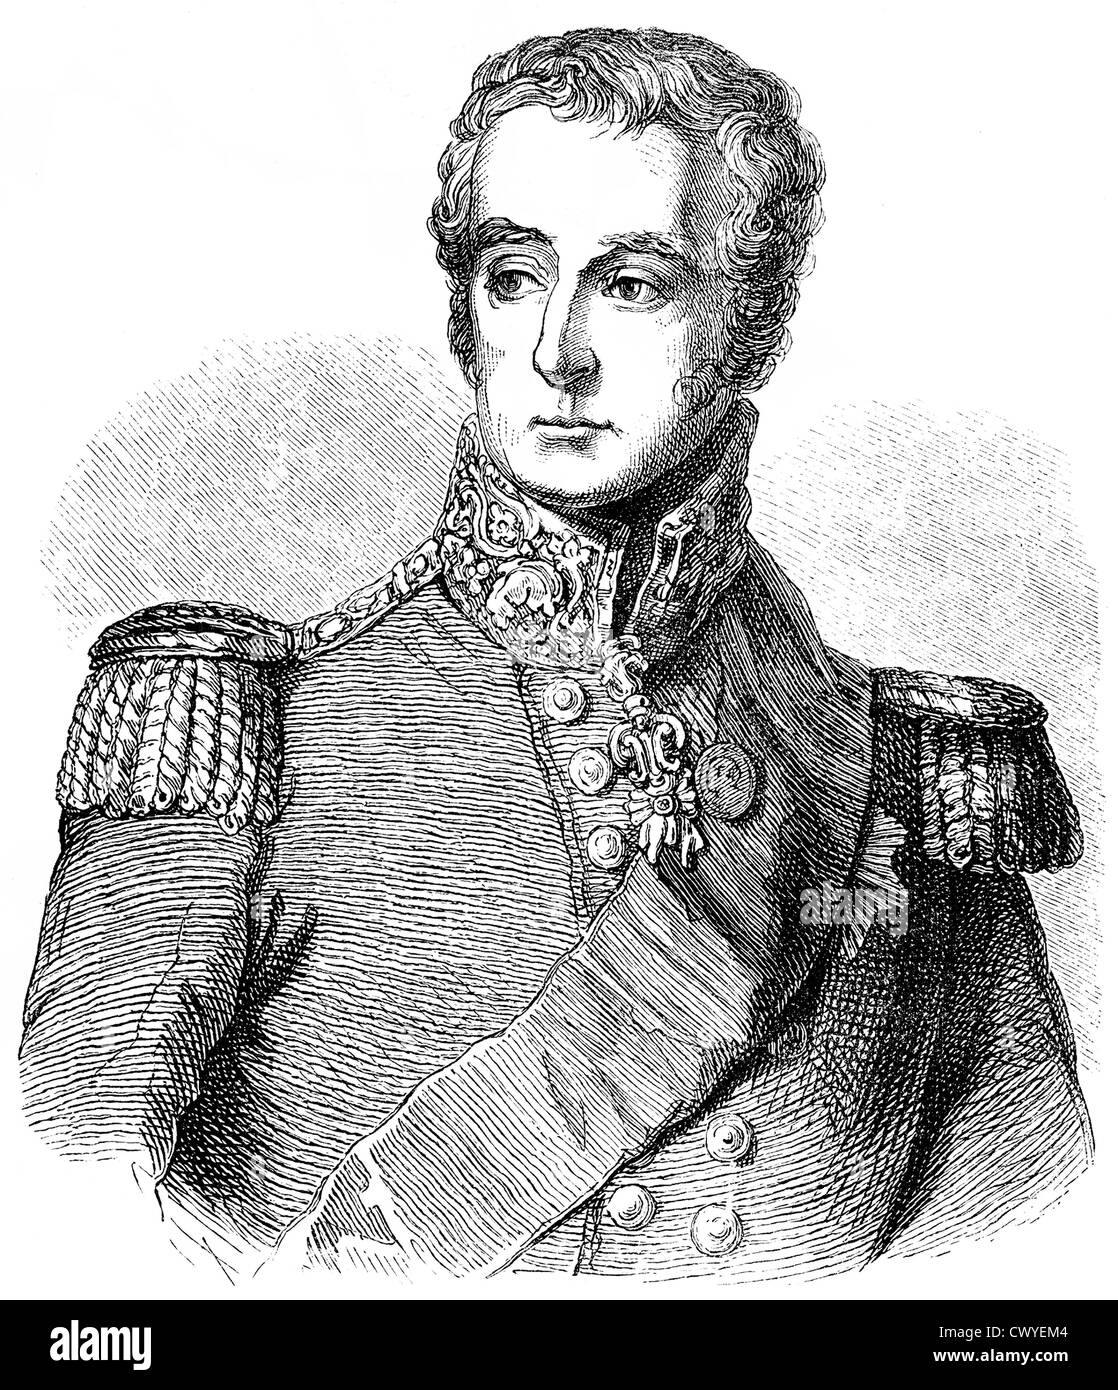 Historical drawing from the 19th century, portrait of Arthur Wellesley, 1st Duke of Wellington, 1769 - 1852, field - Stock Image